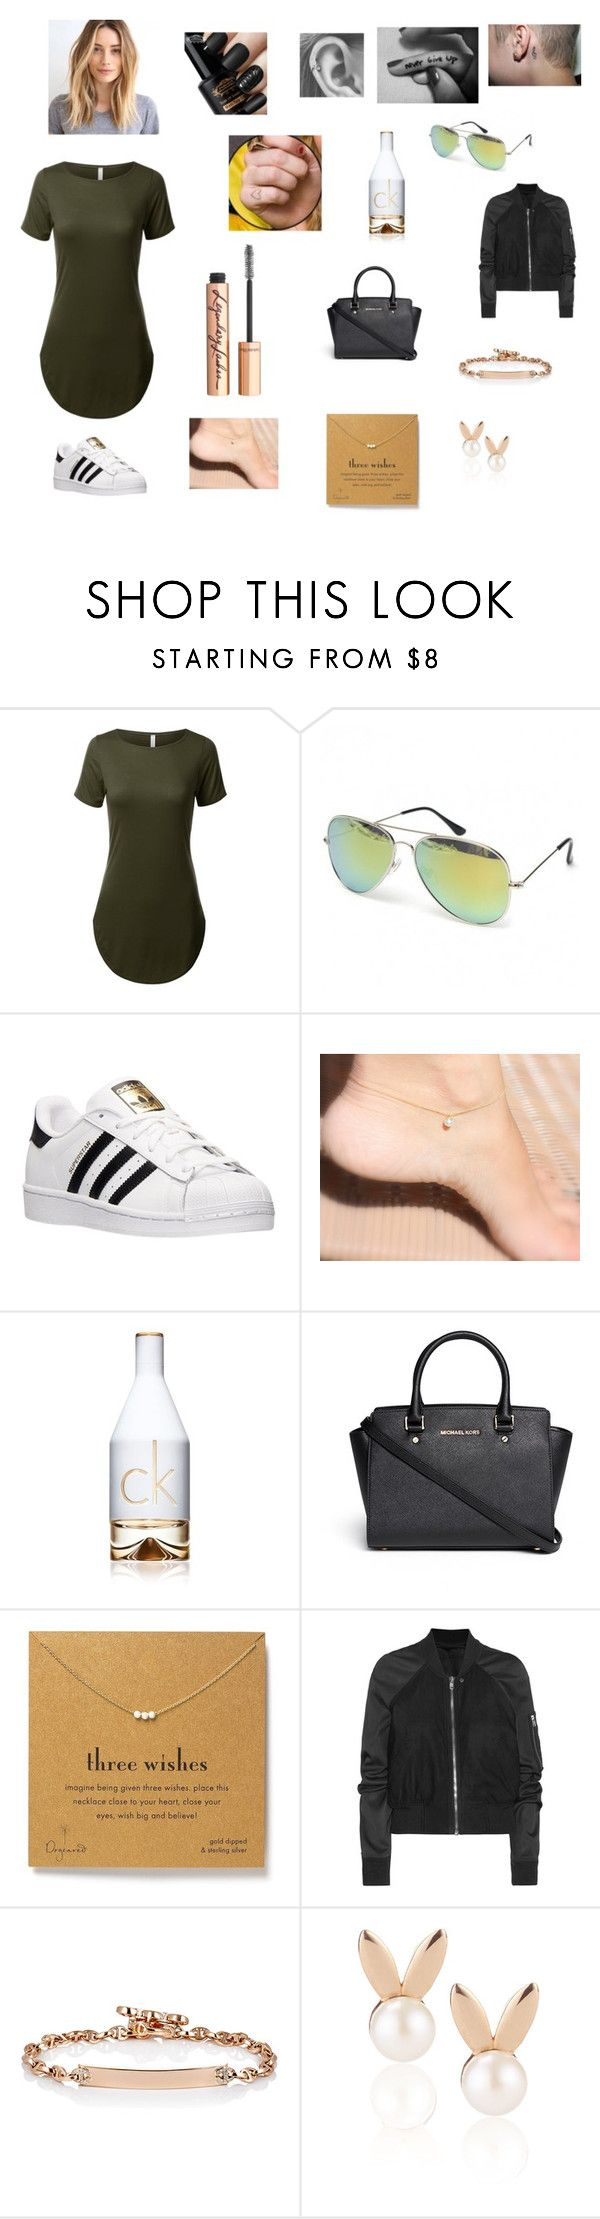 Untitled #223 by katrine-frid on Polyvore featuring Rick Owens, adidas, Michael Kors, Dogeared, Hoorsenbuhs, Aamaya by priyanka, Charlotte Tilbury and Calvin Klein